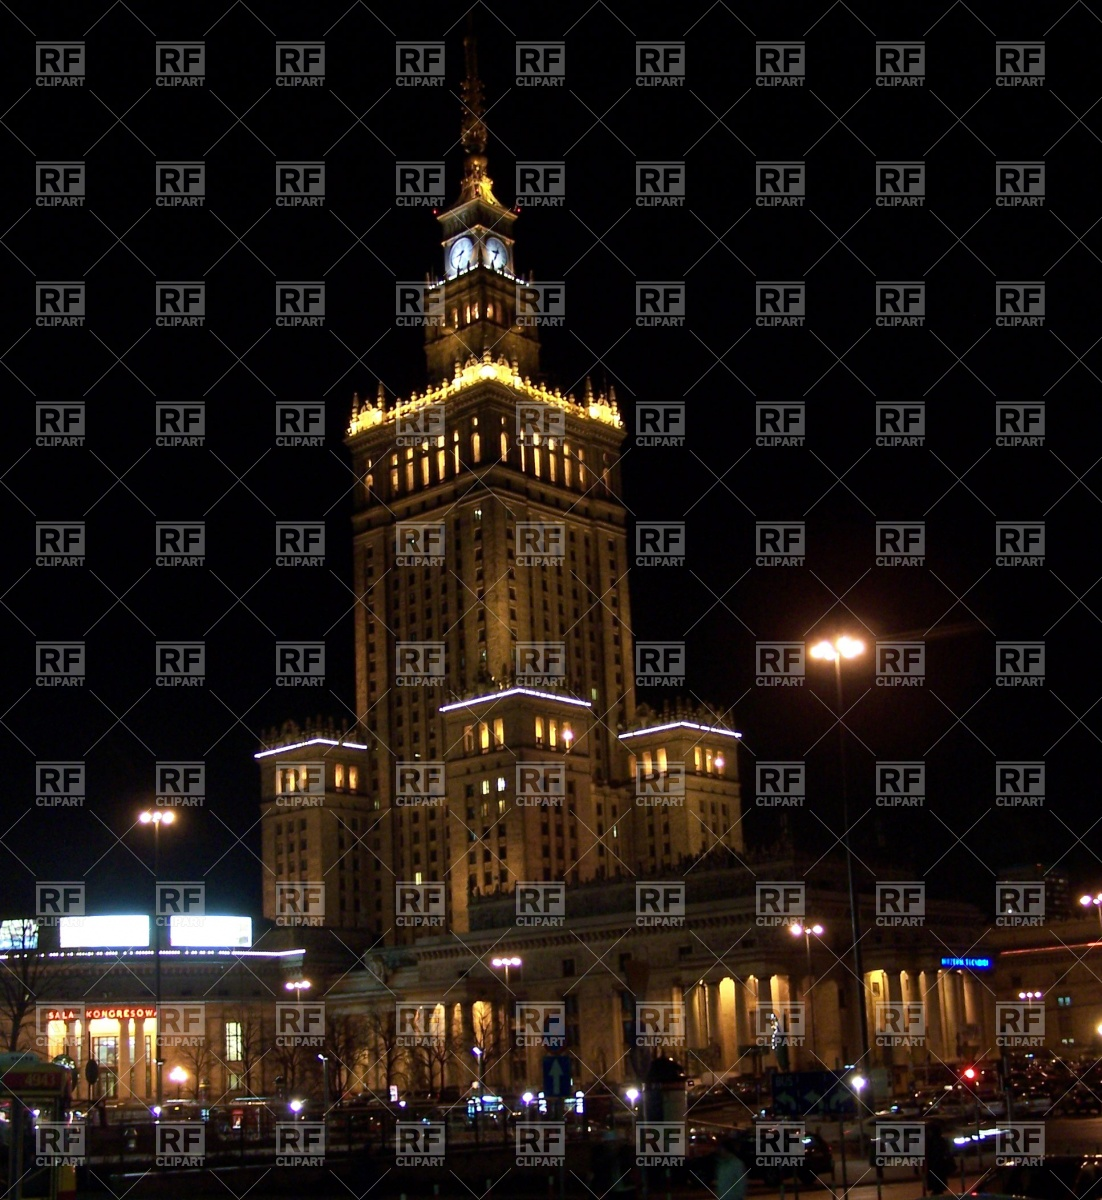 Palace of Culture and science in Warsaw Vector Image #397.